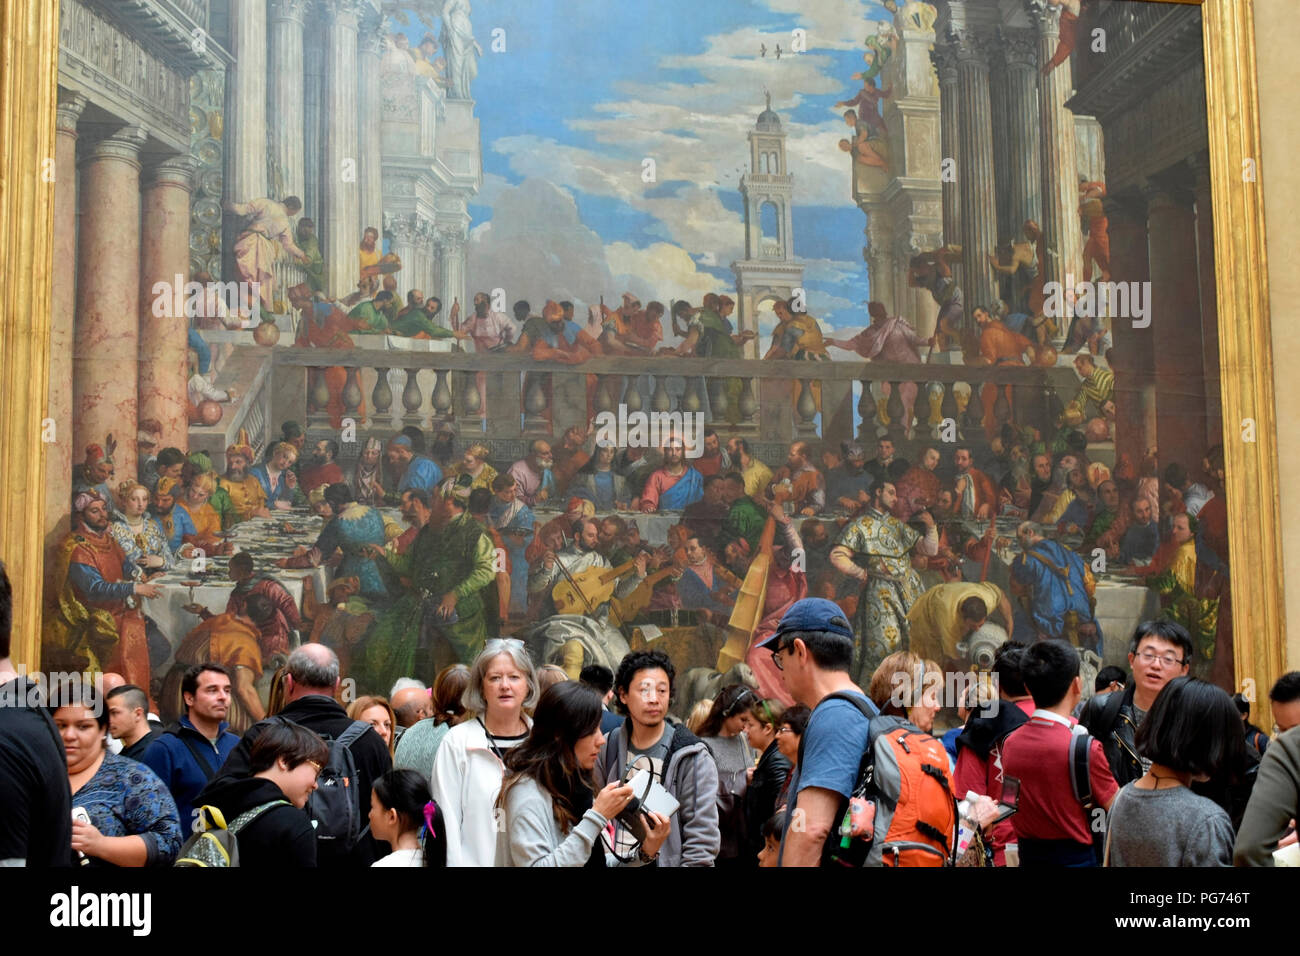 Visitors in front of The Wedding Feast at Cana by Veronese, the largest painting in the Louvre gallery, Paris,France Stock Photo